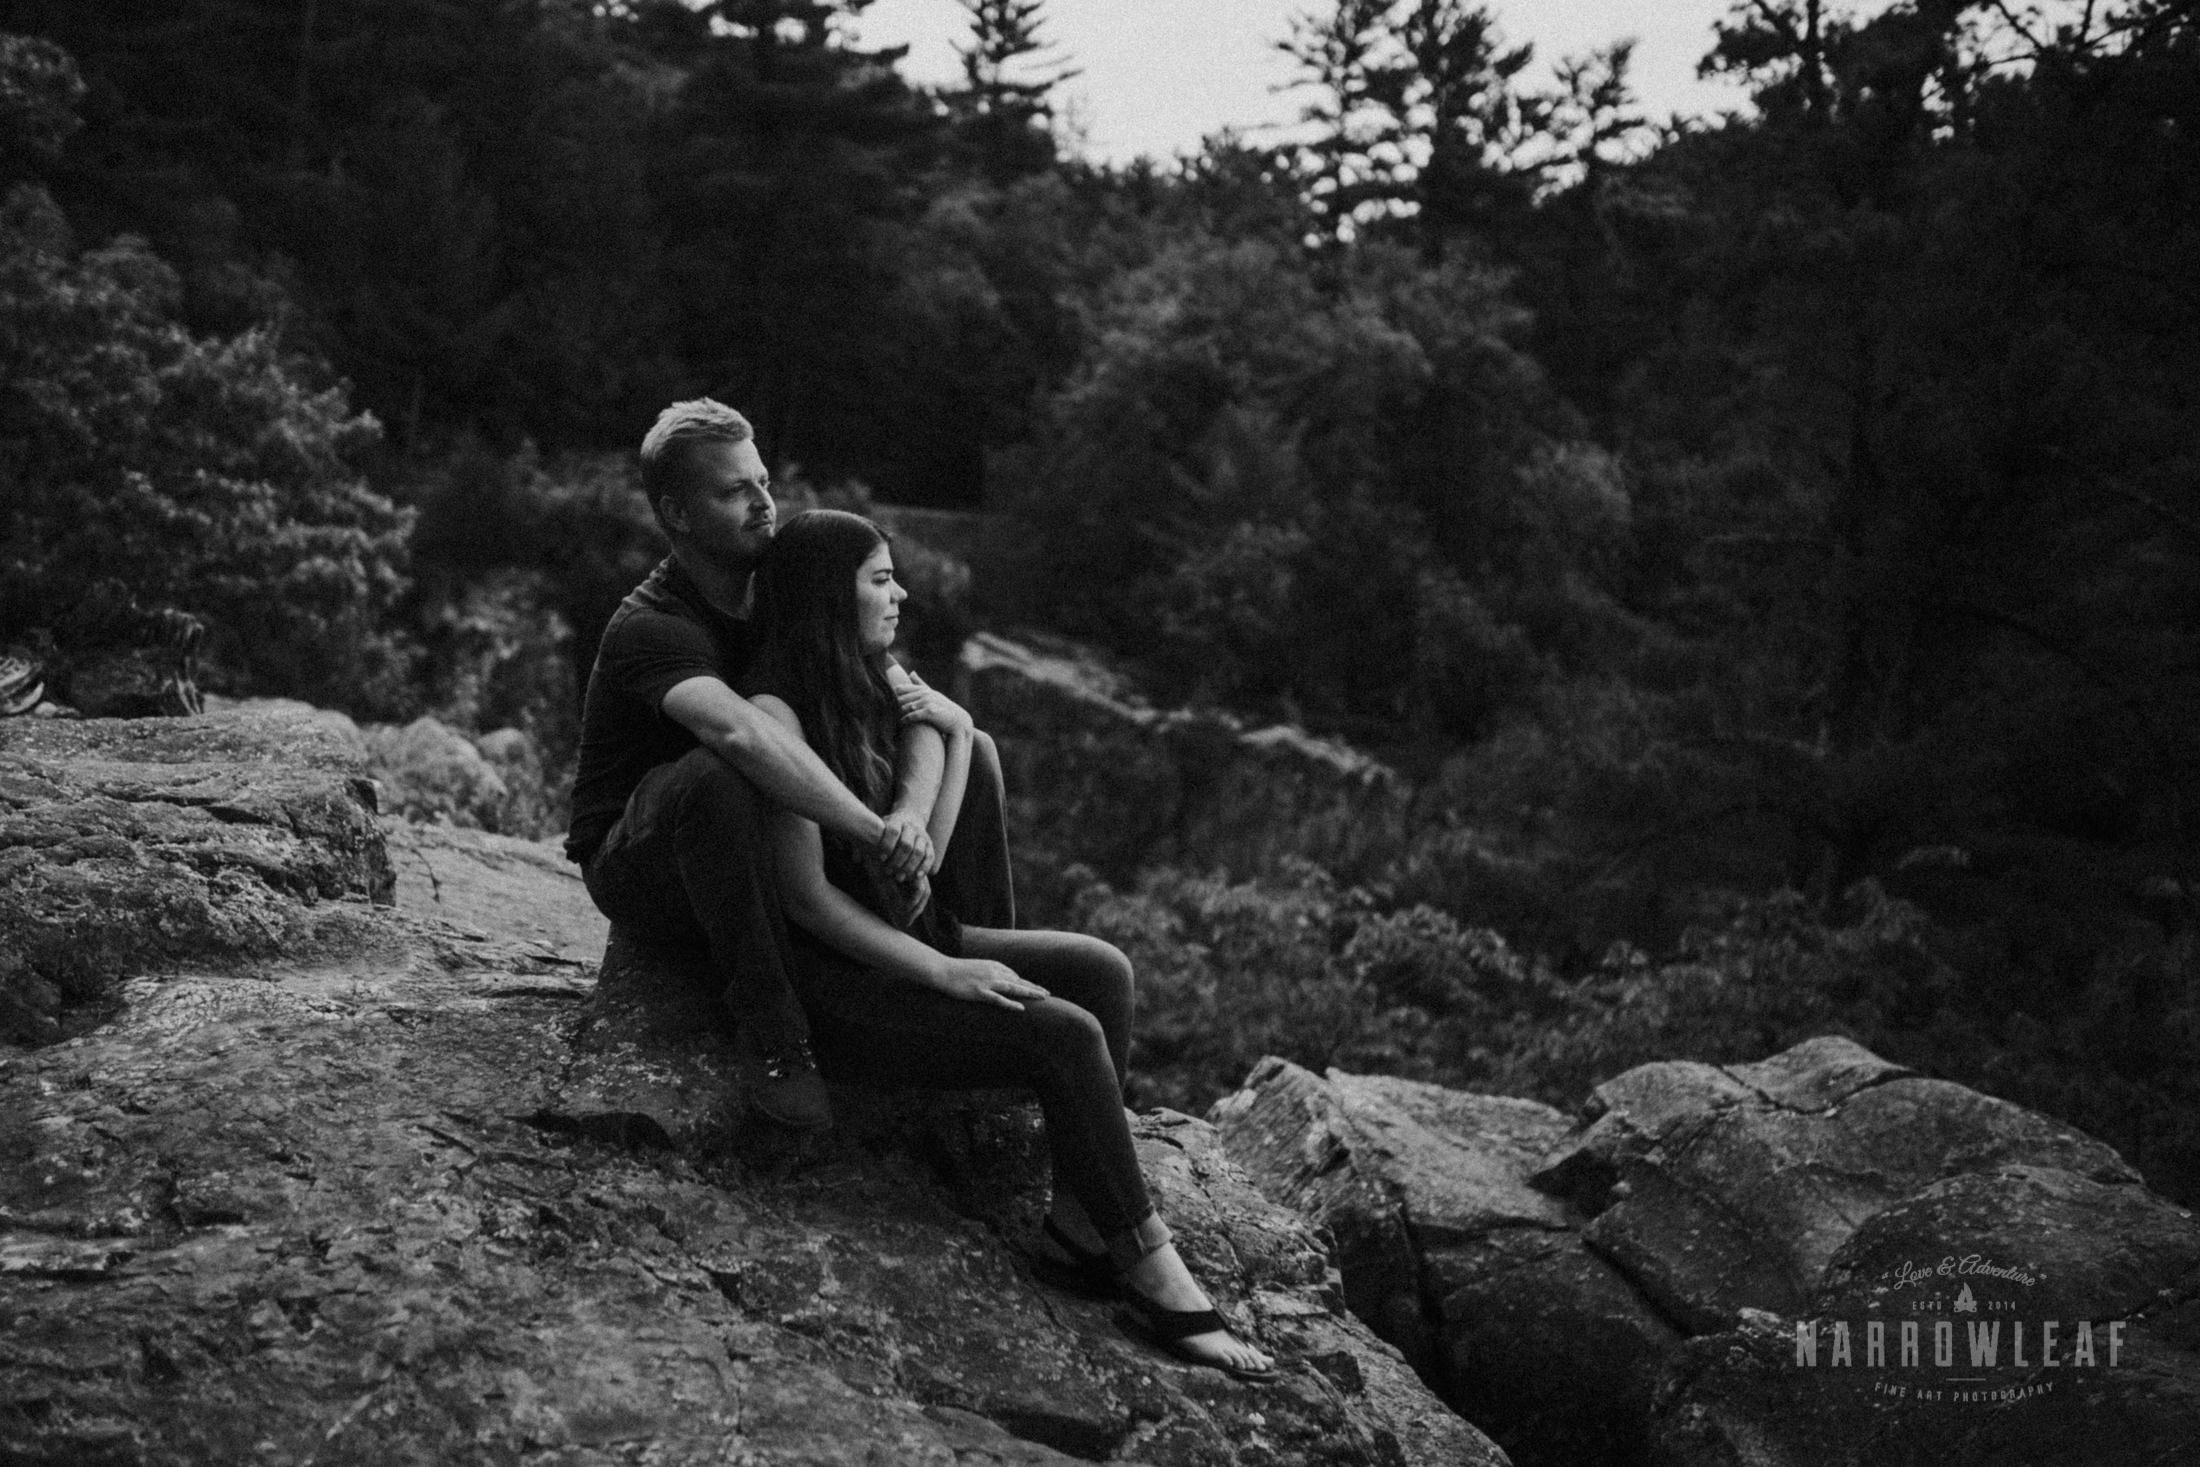 moody-engagement-hiking-photographey-Narrowleaf_Love_and_Adventure_Photography-1674.jpg